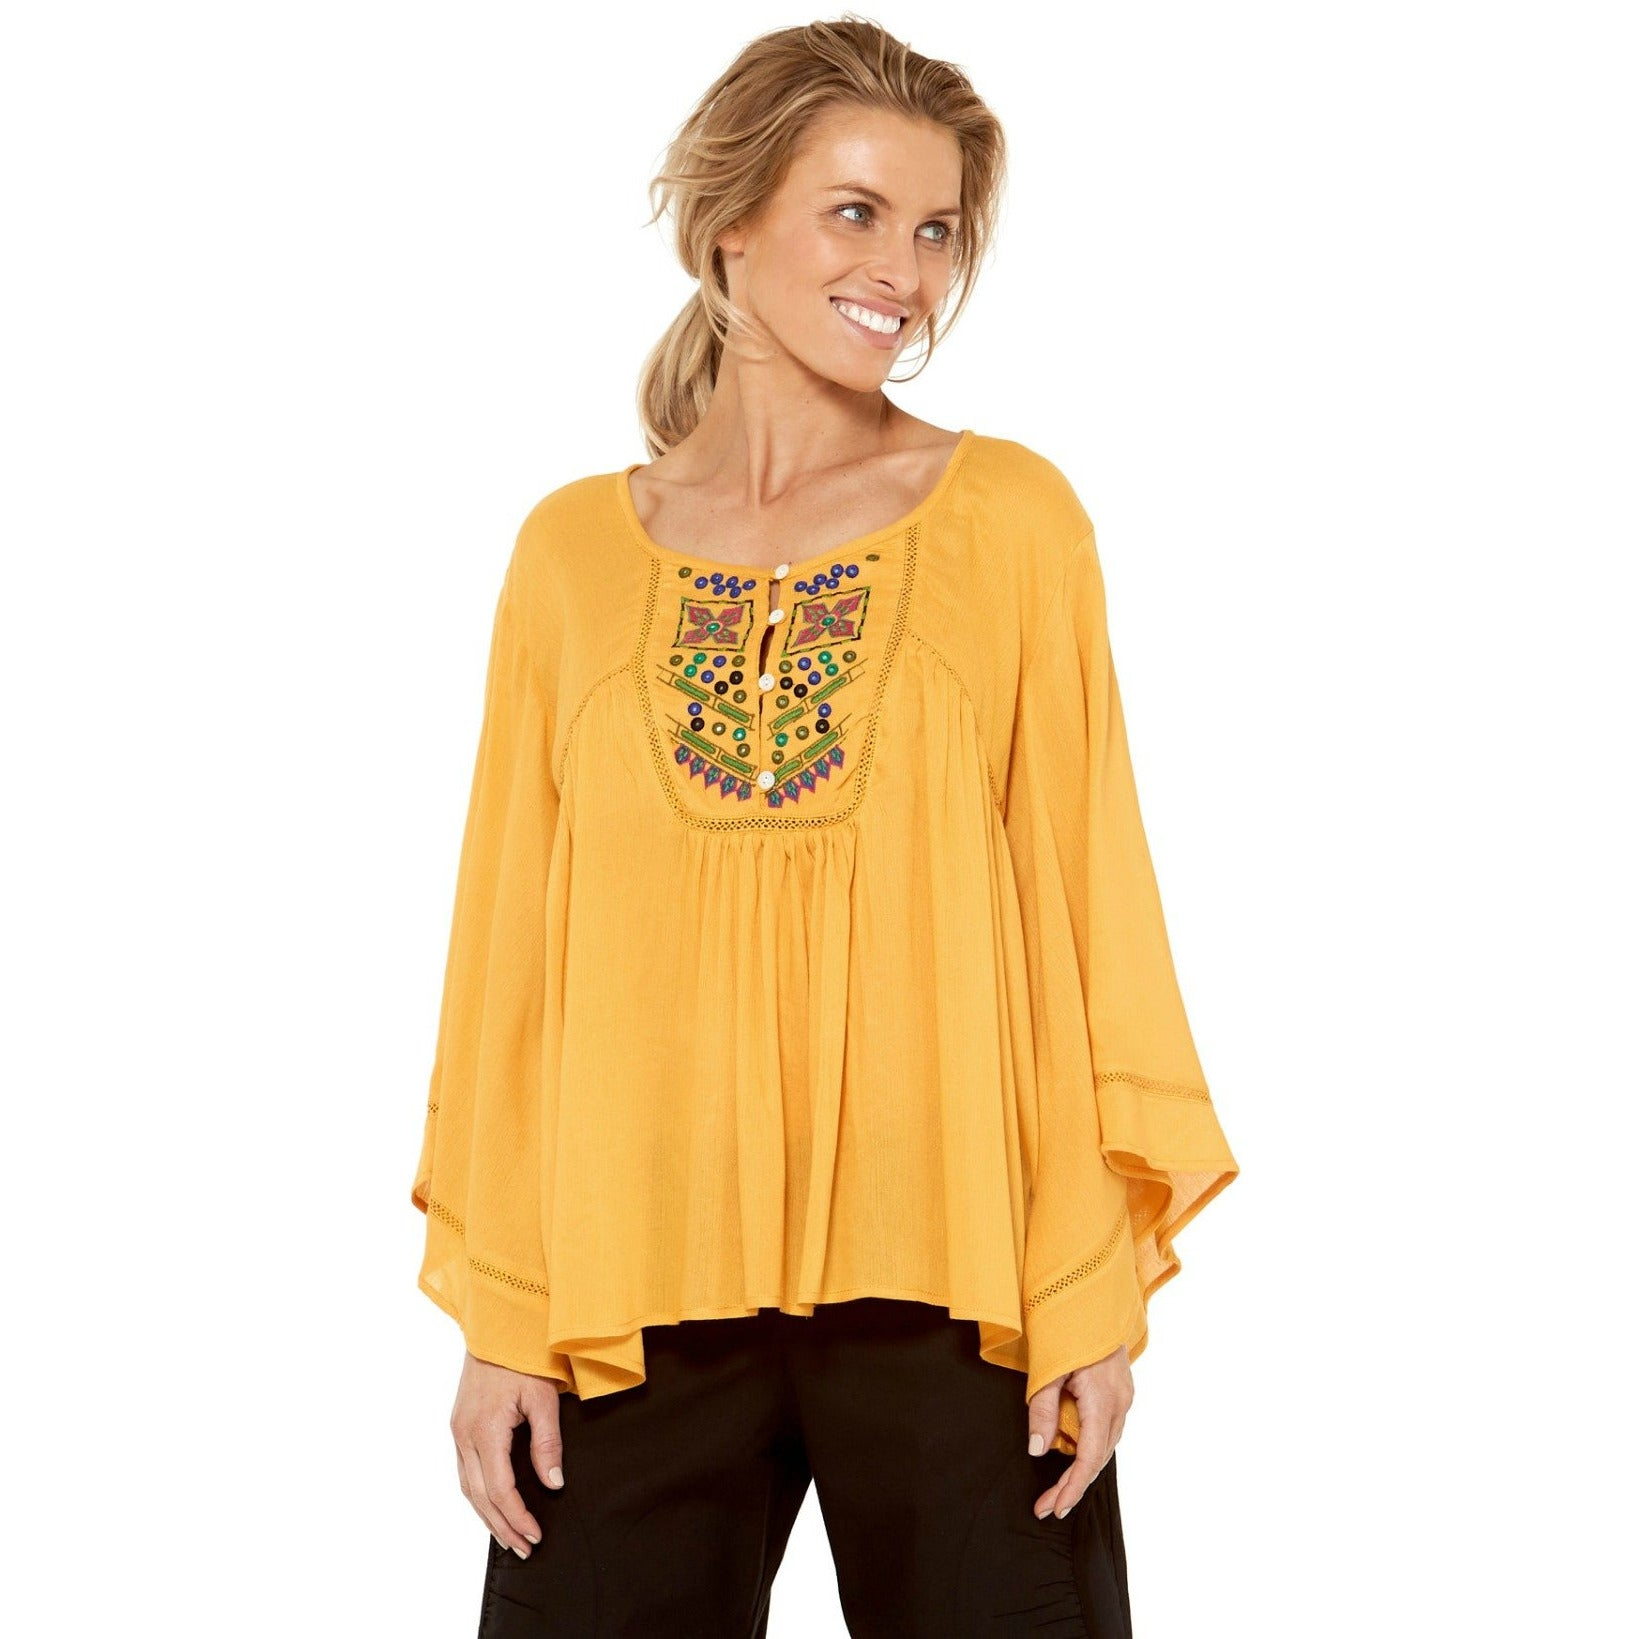 Rasaleela Sidney Top L114 in Mustard